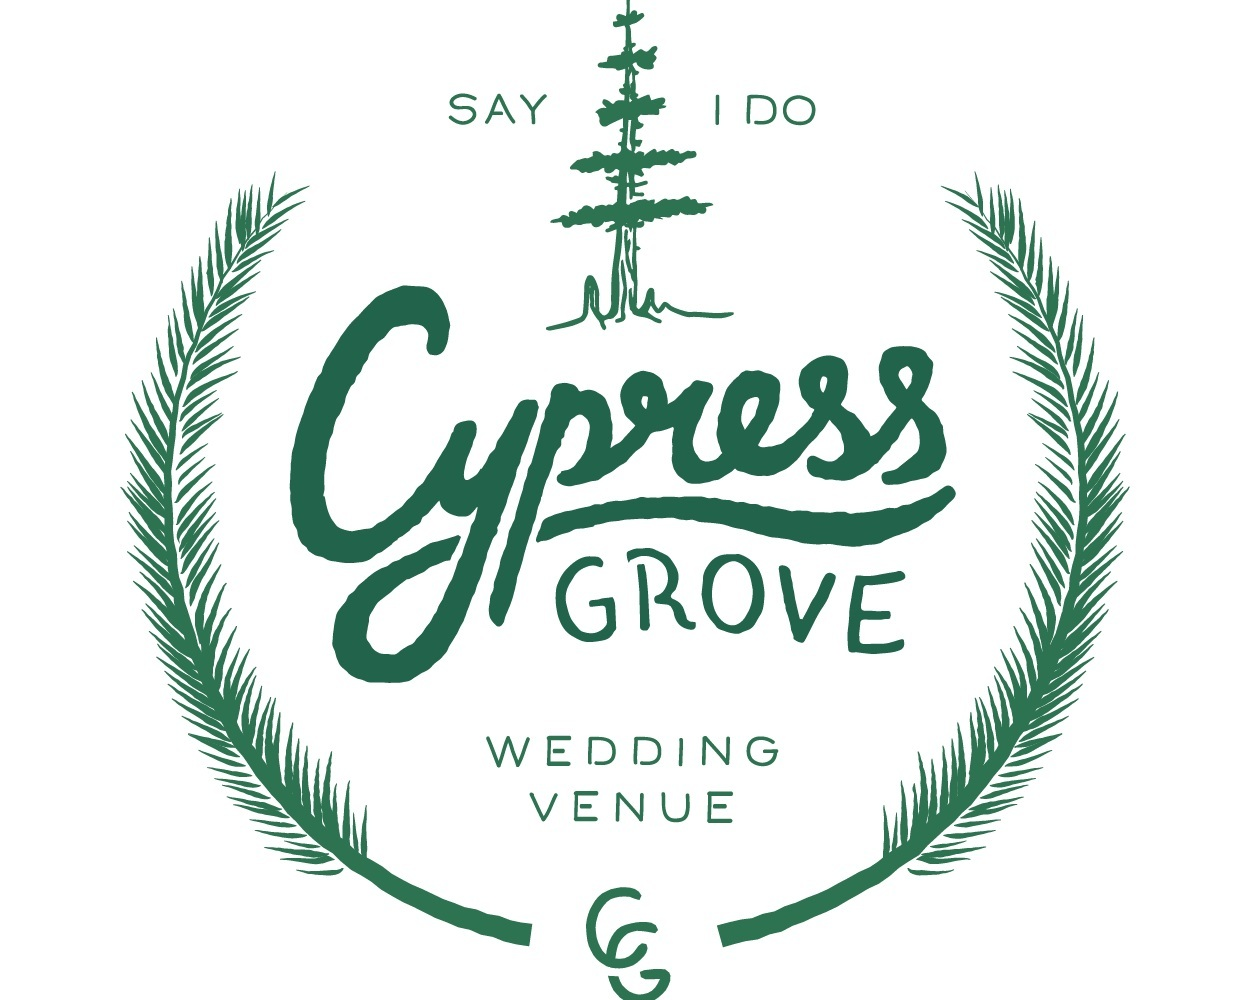 Cypress Grove Wedding Venue - Eunice, LA